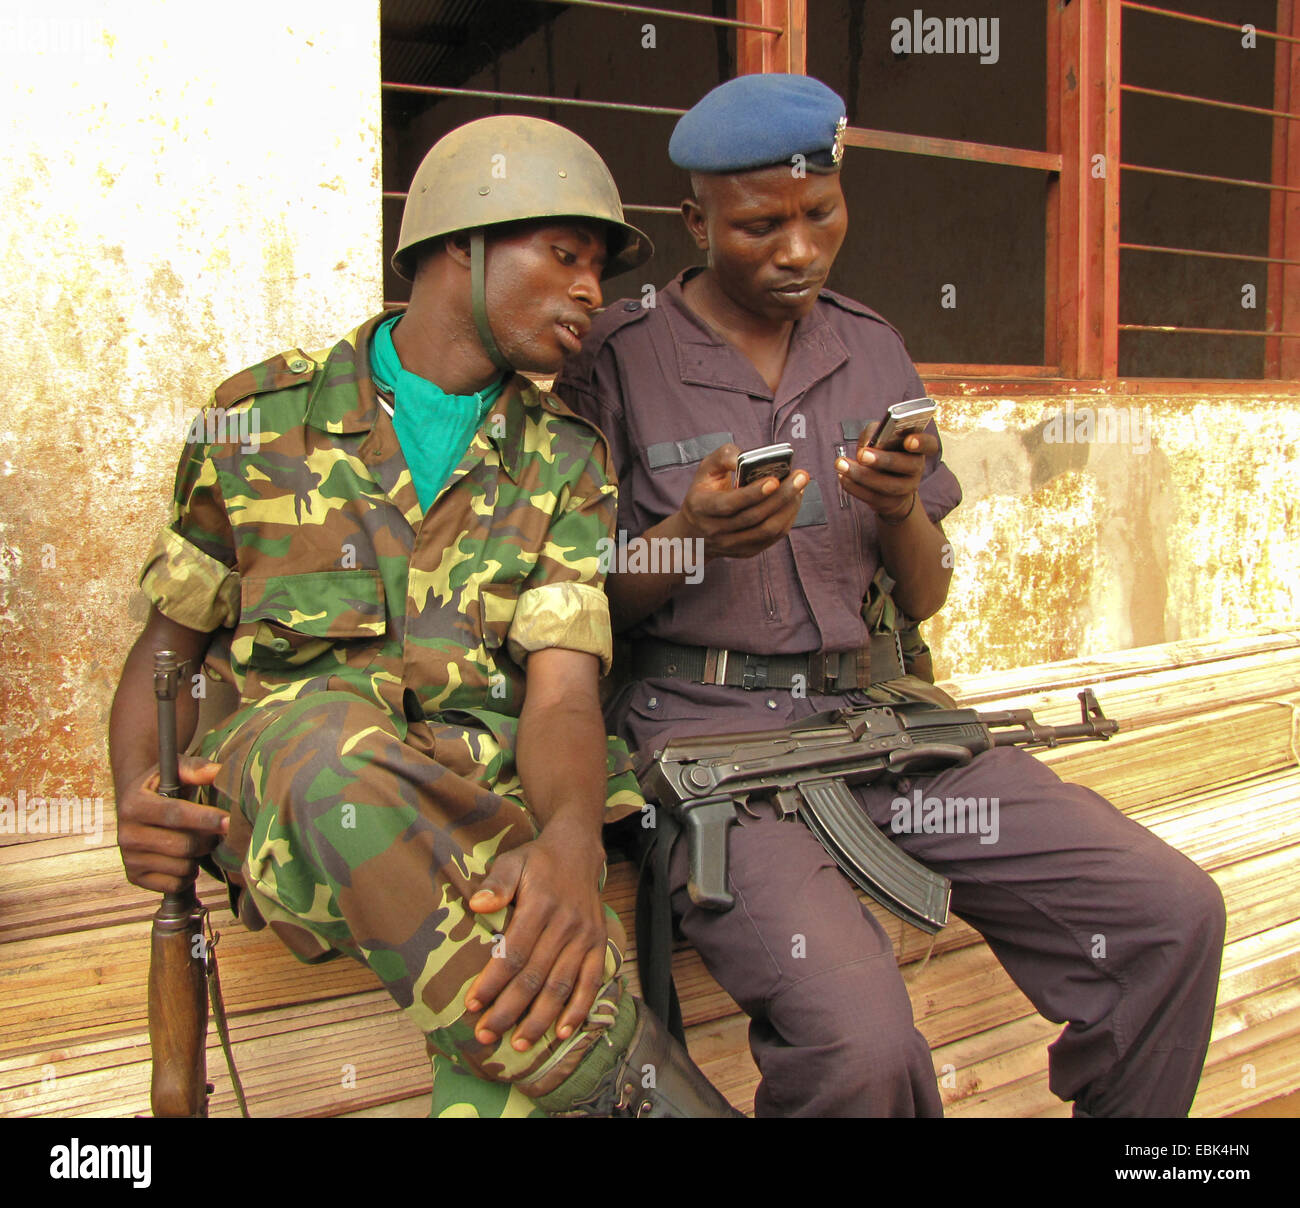 two members of the guard of honour of the burundian army at the festivities for the International Day of Human Rights - Stock Image